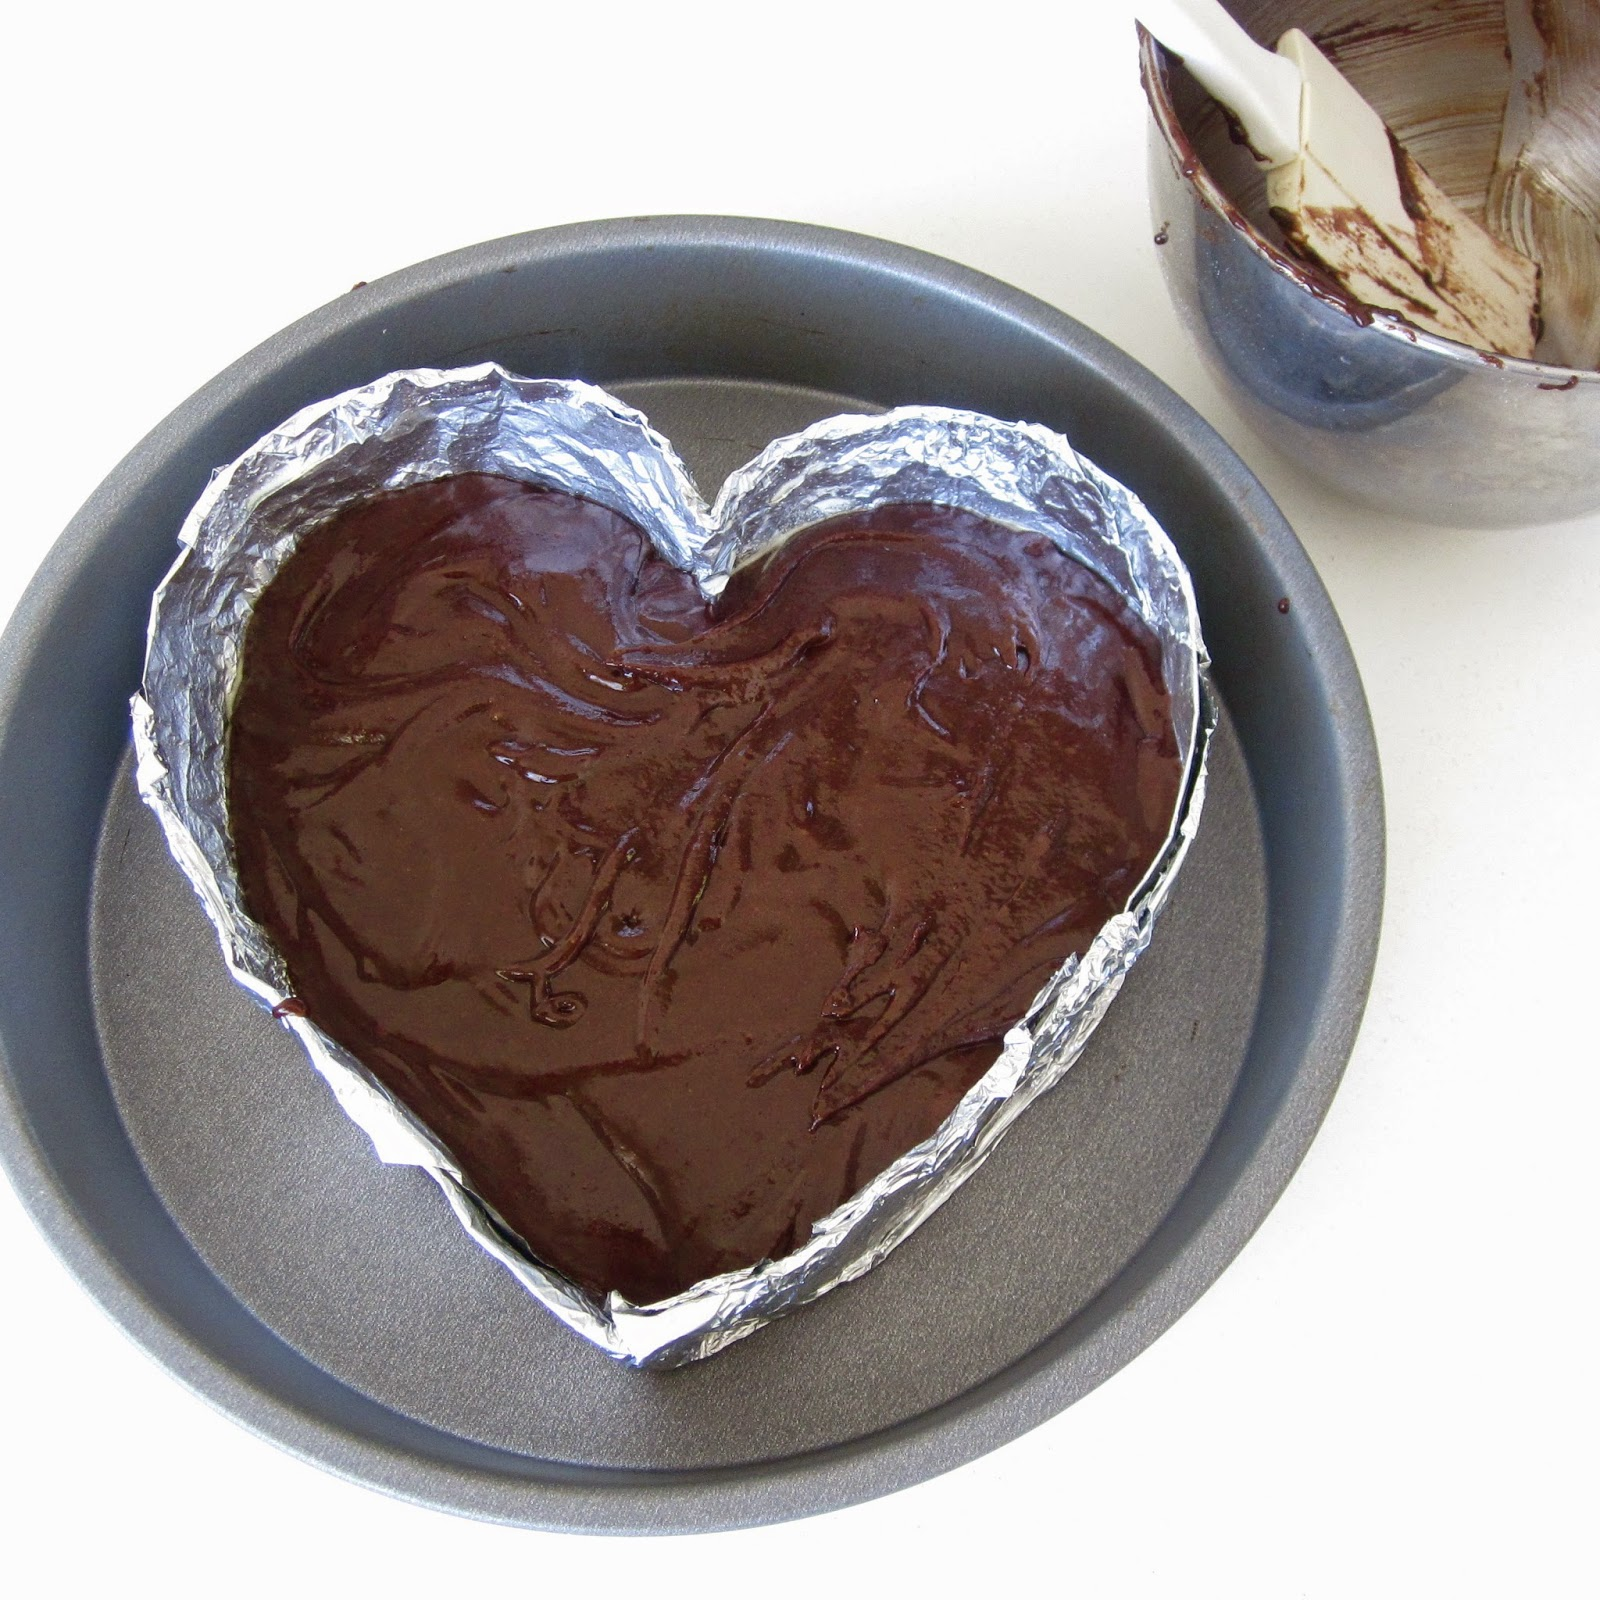 You Can Also Get Creative And Create Different Shaped Pans Using Foil Like My Number 2 Pan